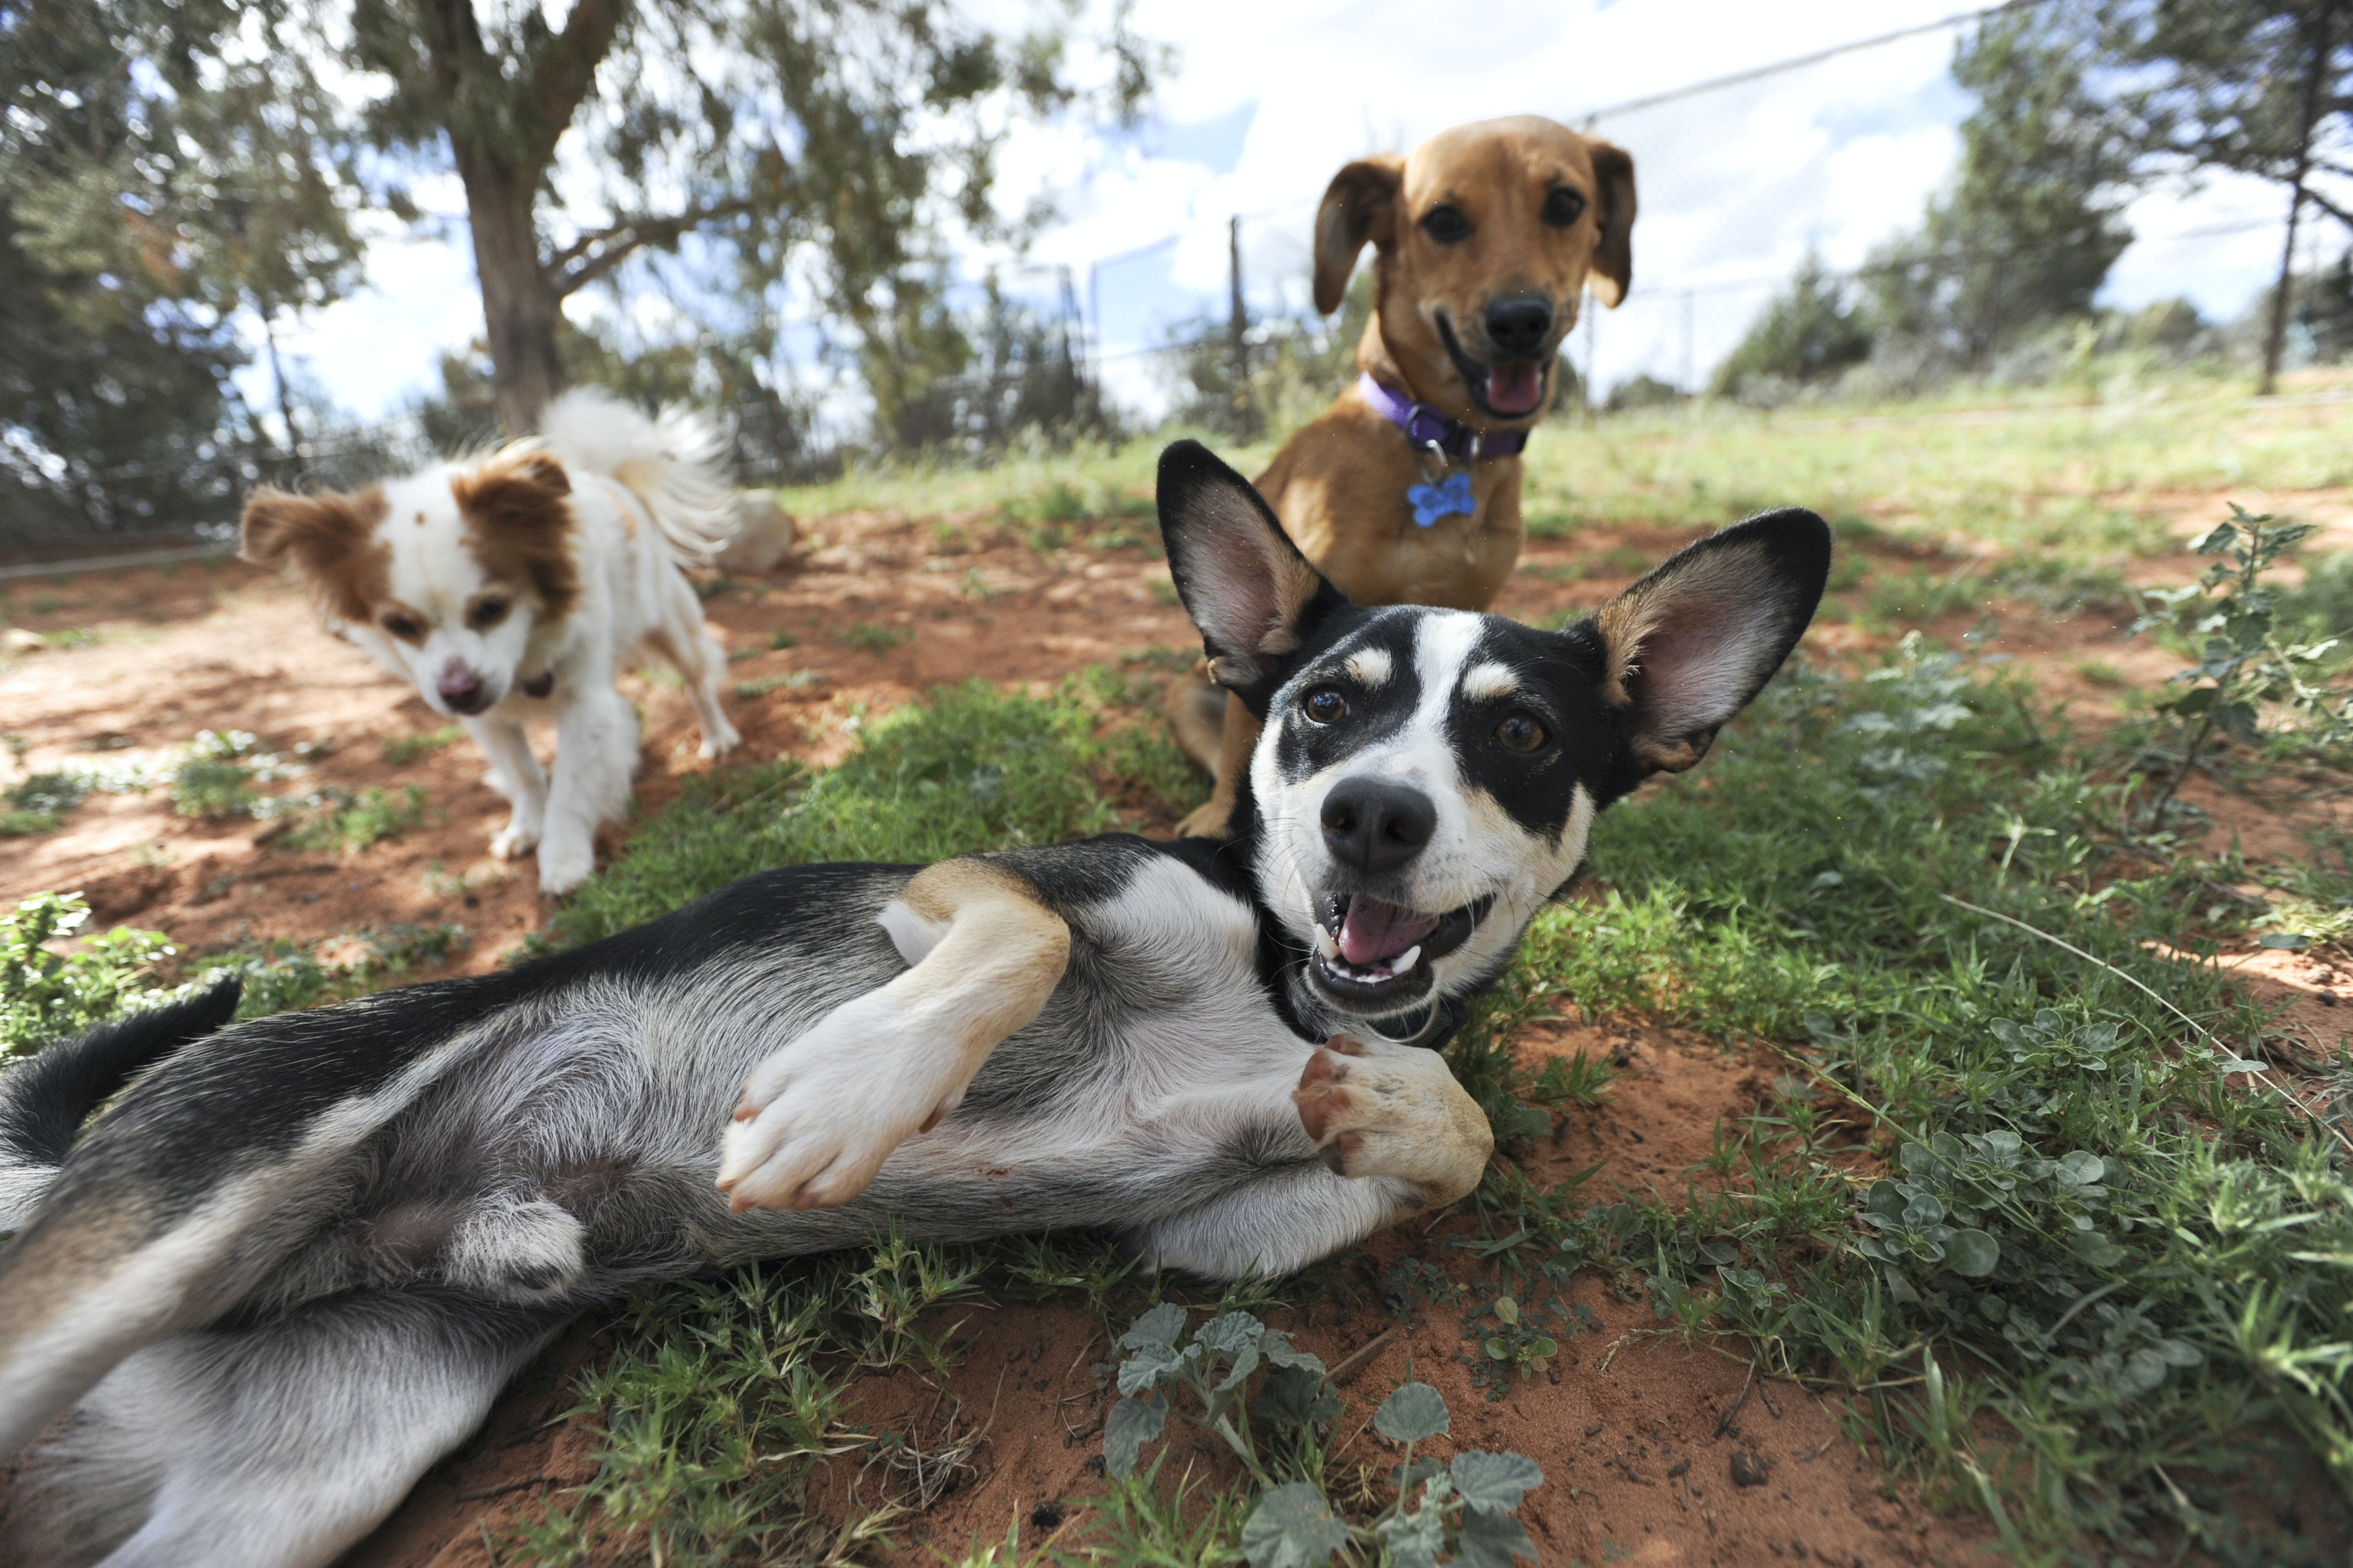 Red Mountain Resort takes its guests to Best Friends Animal Sanctuary, where 1,600 rescue animals live.